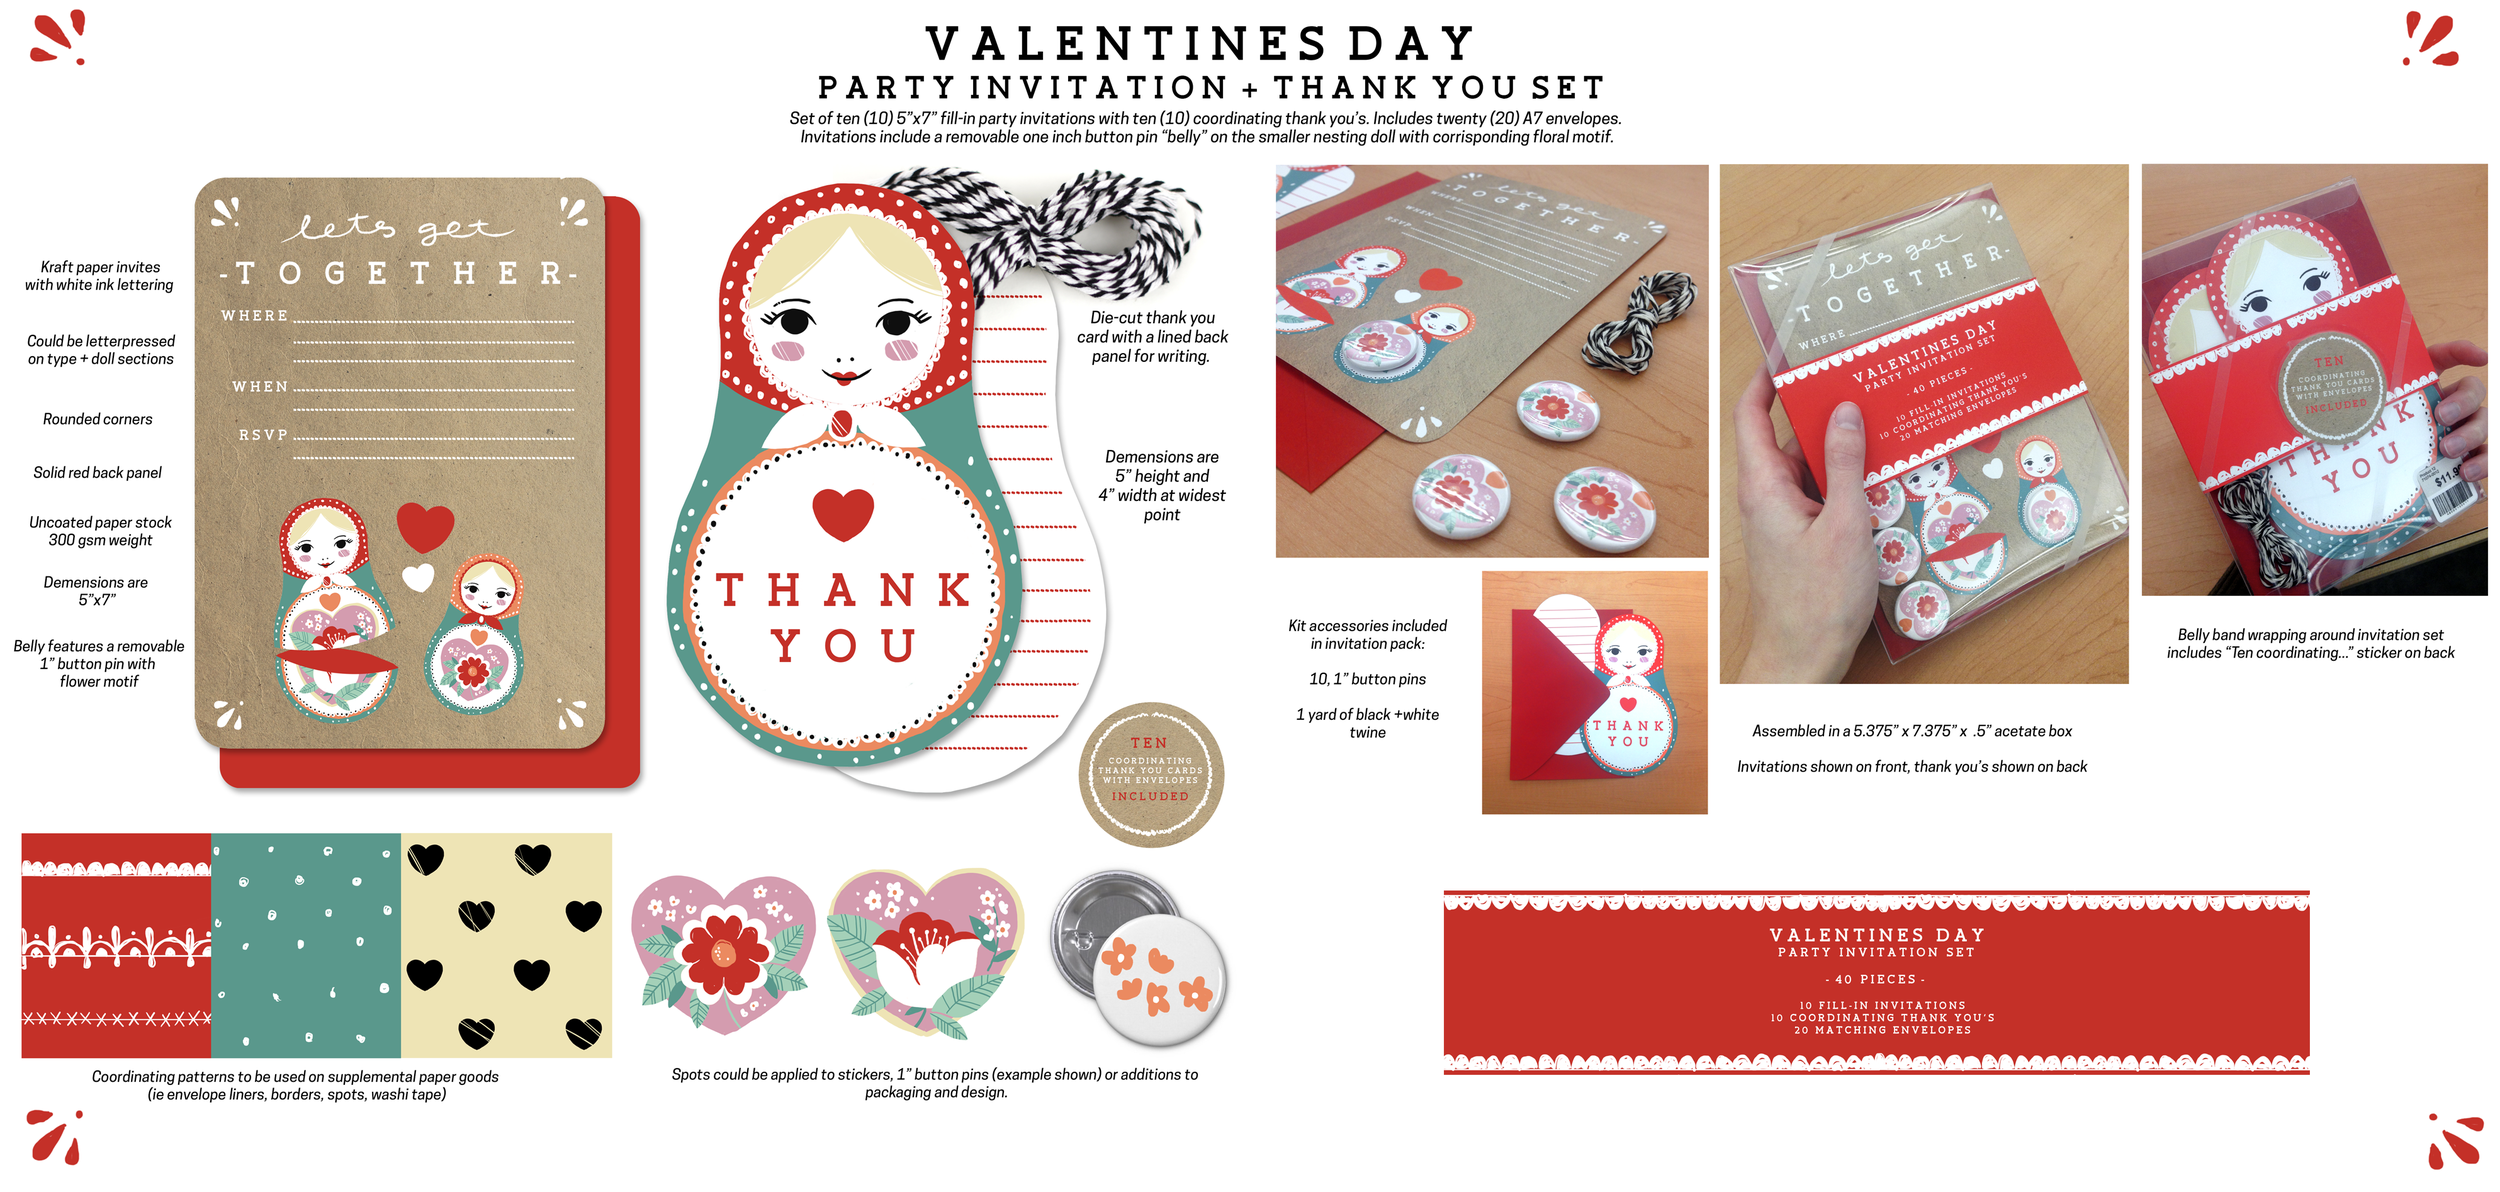 LETS GET TOGETHER   Invitation and thank you set for a Valentines Day themed party.